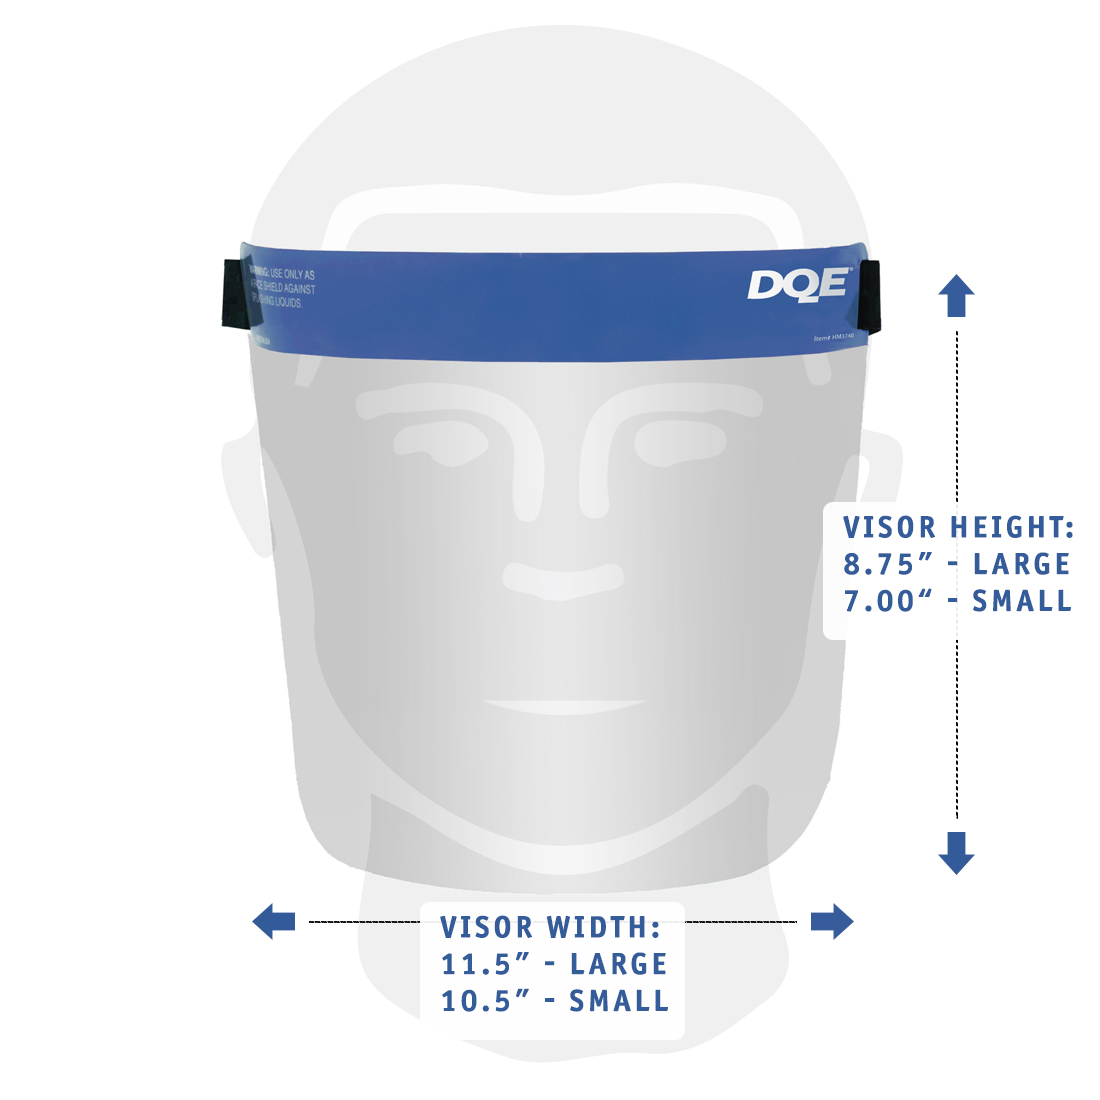 Reusable Face Shield Dimensions image